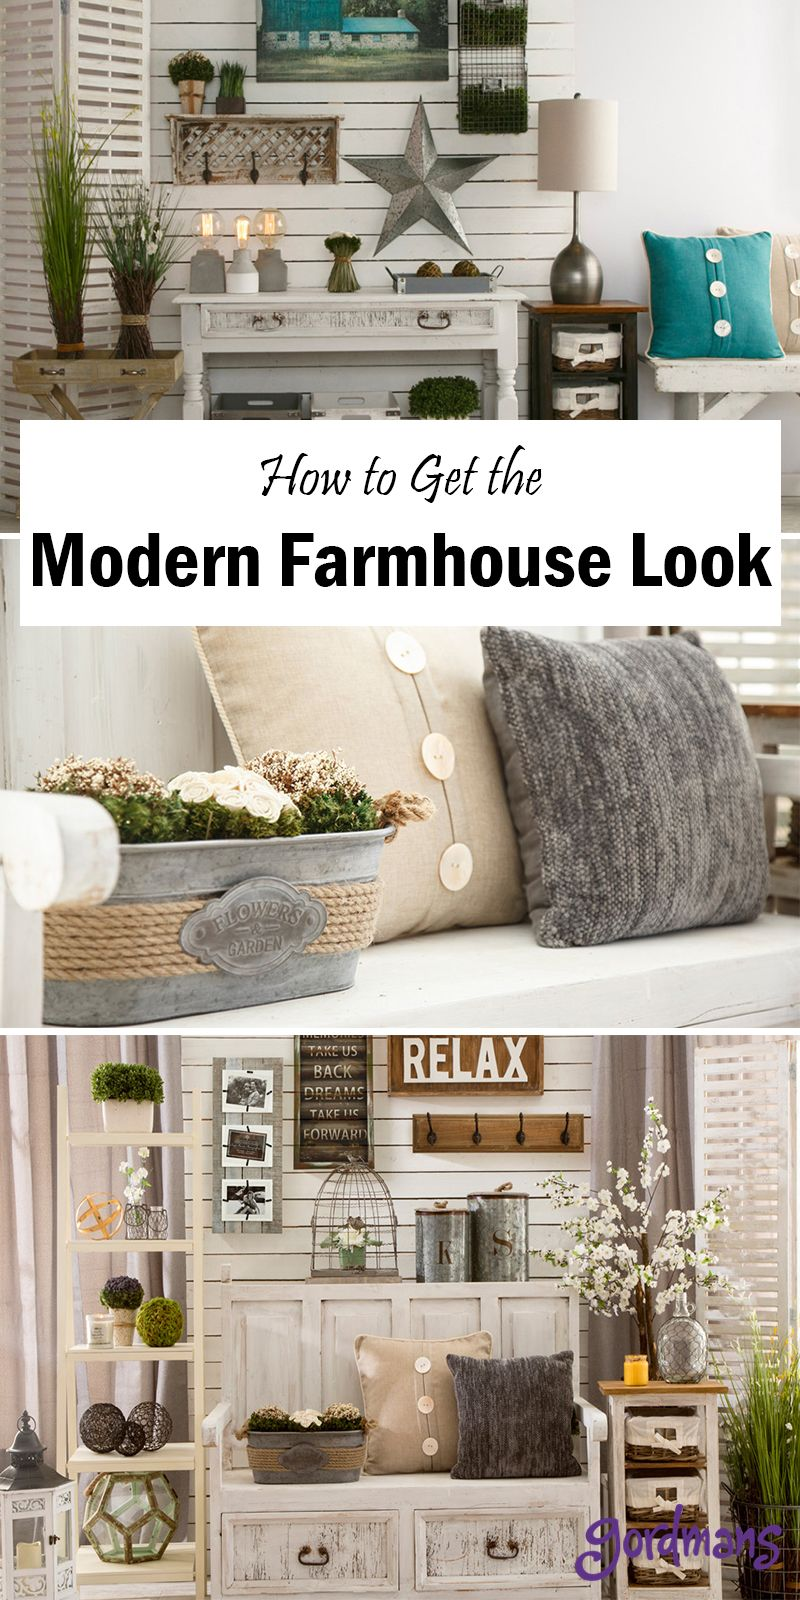 Find Ways To Decorate Your Home With Modern Farmhouse Decor This Style Is Beautiful For All Homes And Will Add That Country Look Any Room